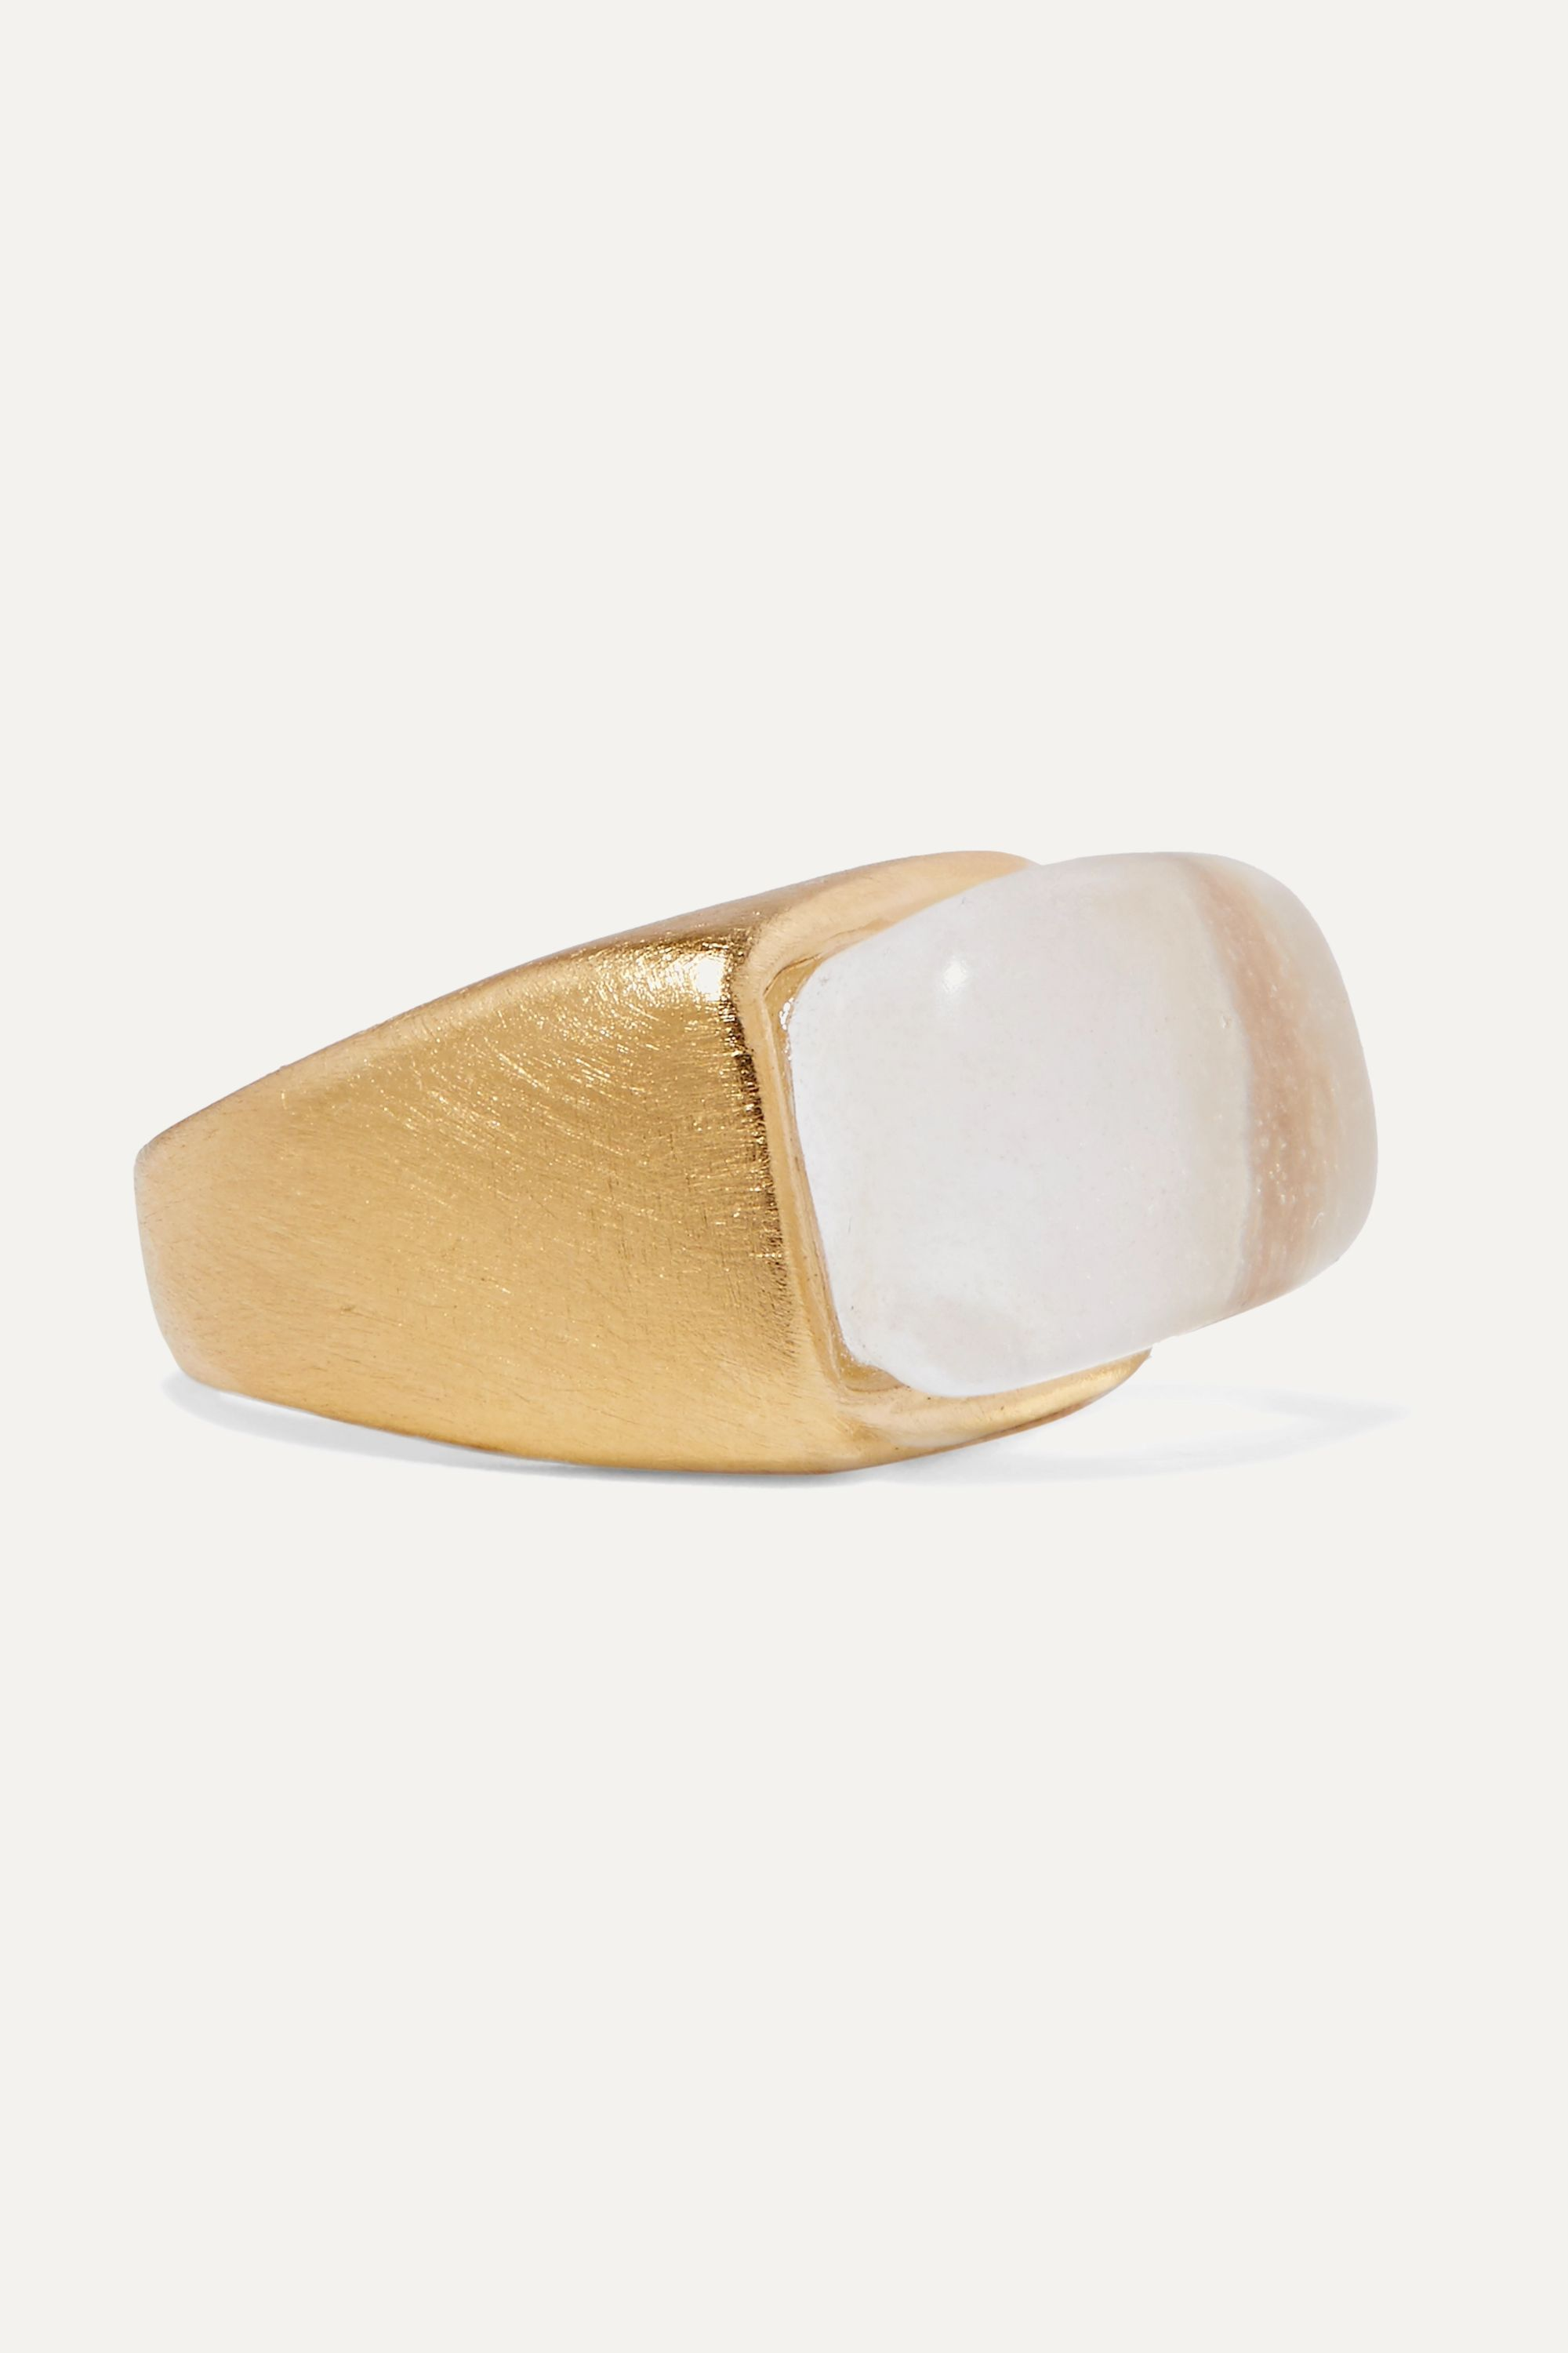 1064 Studio Gold-plated and resin ring